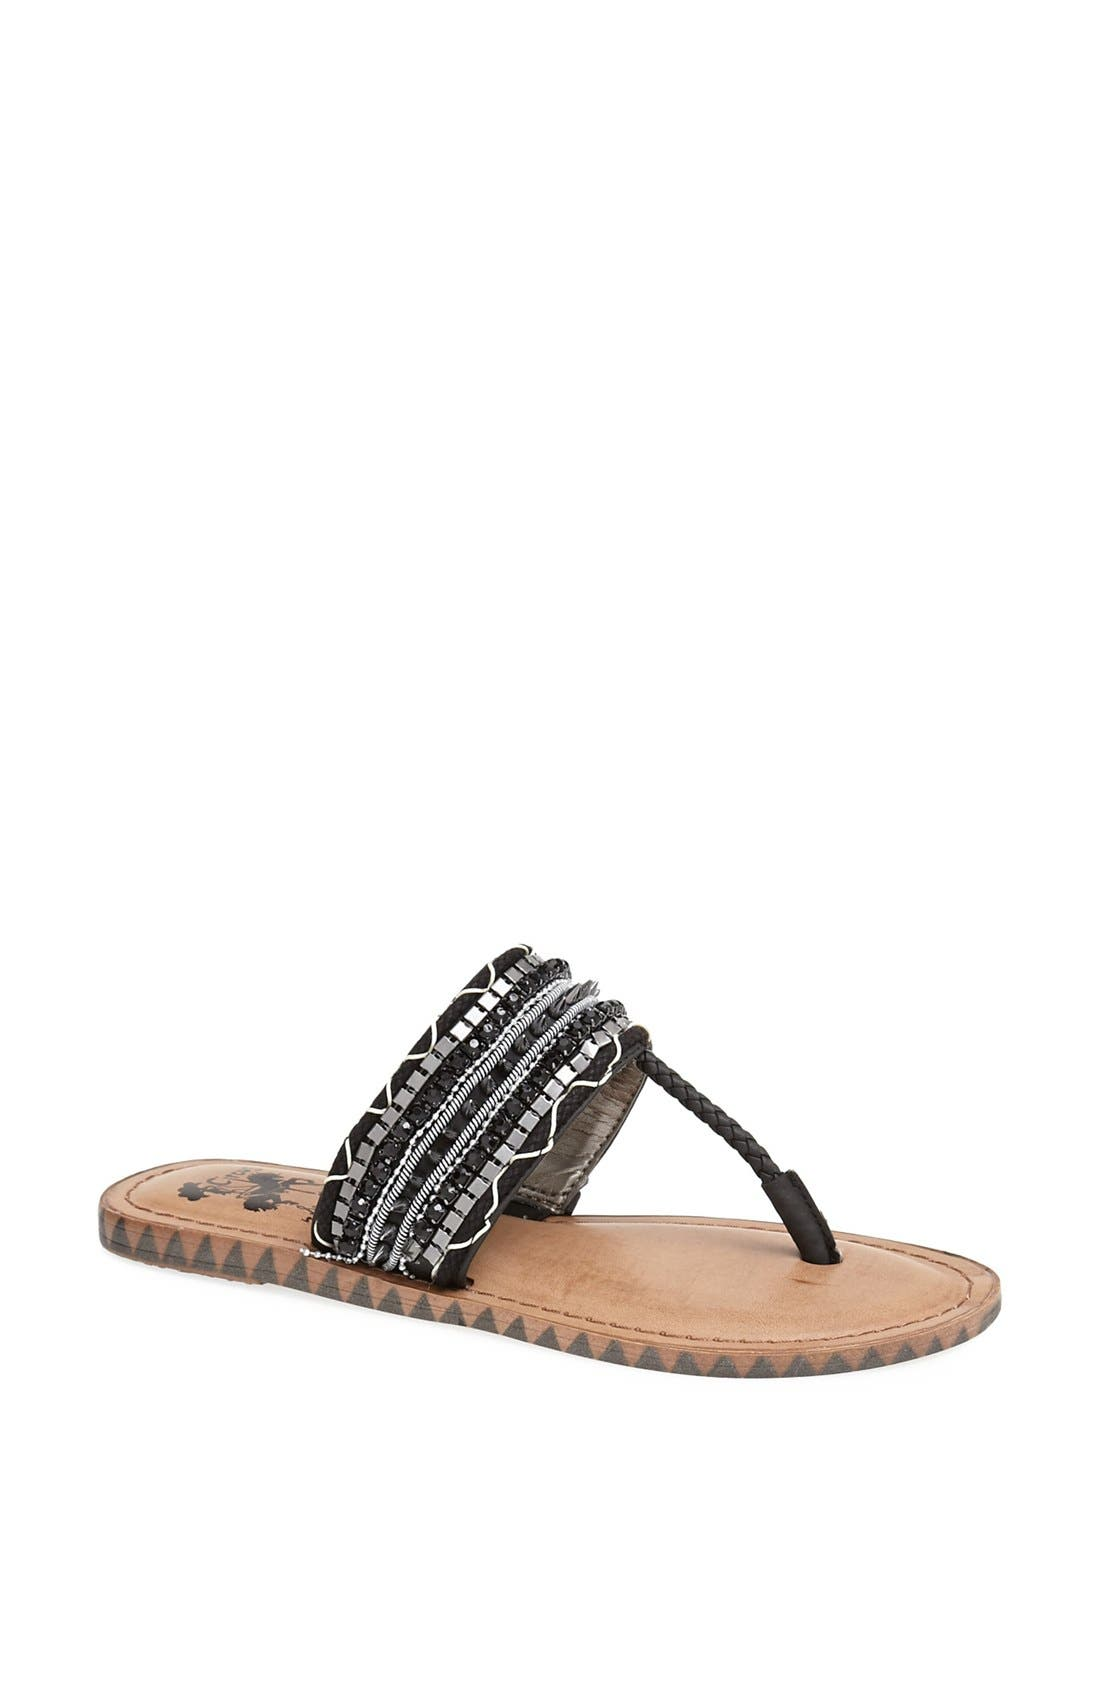 Alternate Image 1 Selected - Circus by Sam Edelman 'Mirielle' Sandal